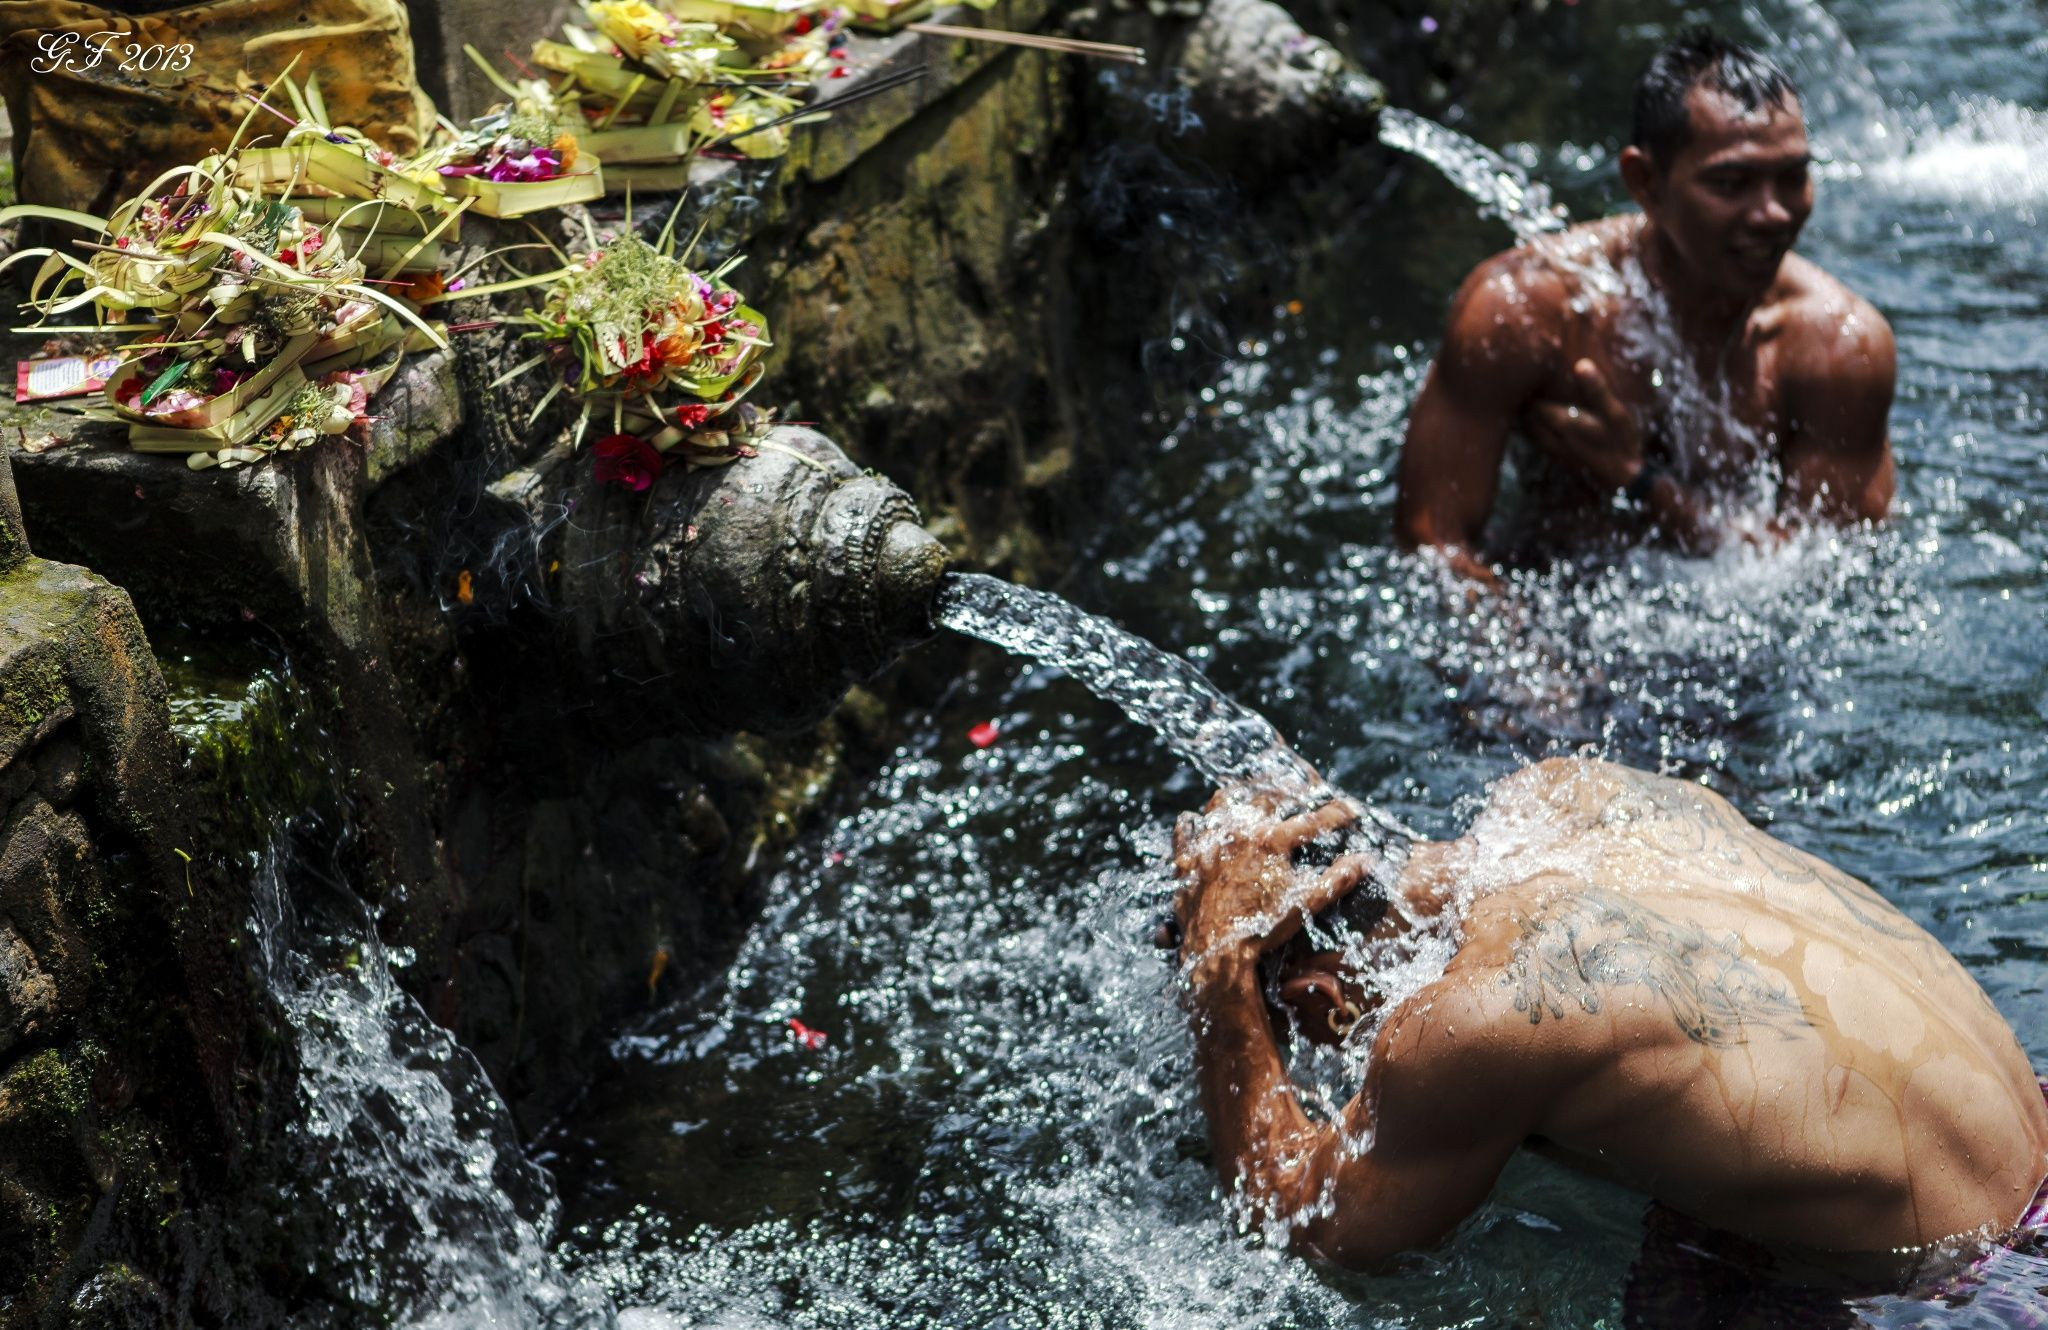 Purification by Gustavo Fernández on 500px - Tirta Empul Temple (Indonesian: Pura Tirta Empul) is a Hindu temple in the middle of Bali, famous for its holy water where Hindu people go for purification.